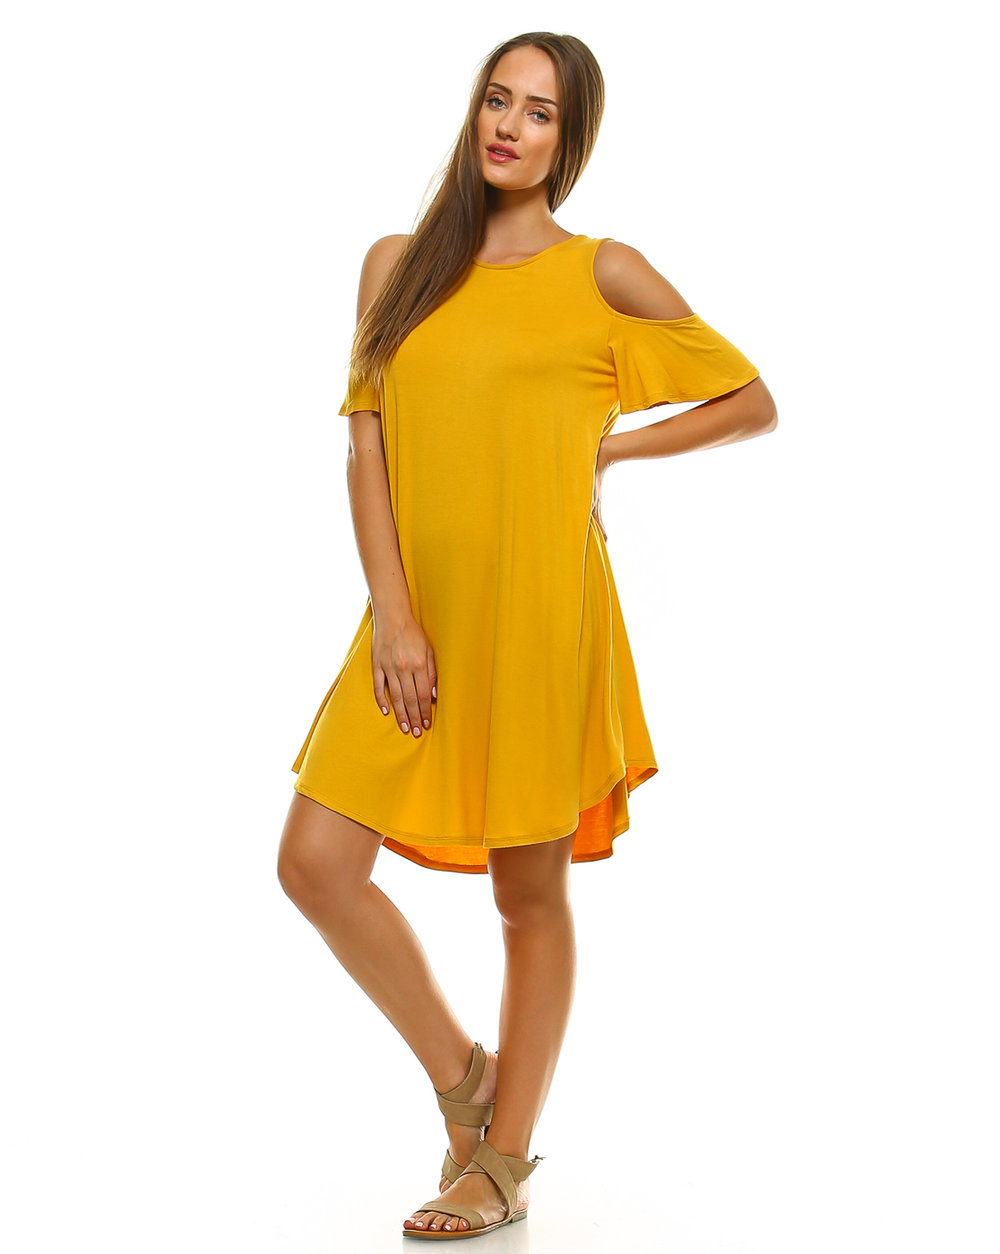 e0699ee6b3bf3 Amie Finery clothing for women has beautiful on-trend cold shoulder tunic  tops and dresses for women. I love my Cold Shoulder Swing Dress – it s so  ...